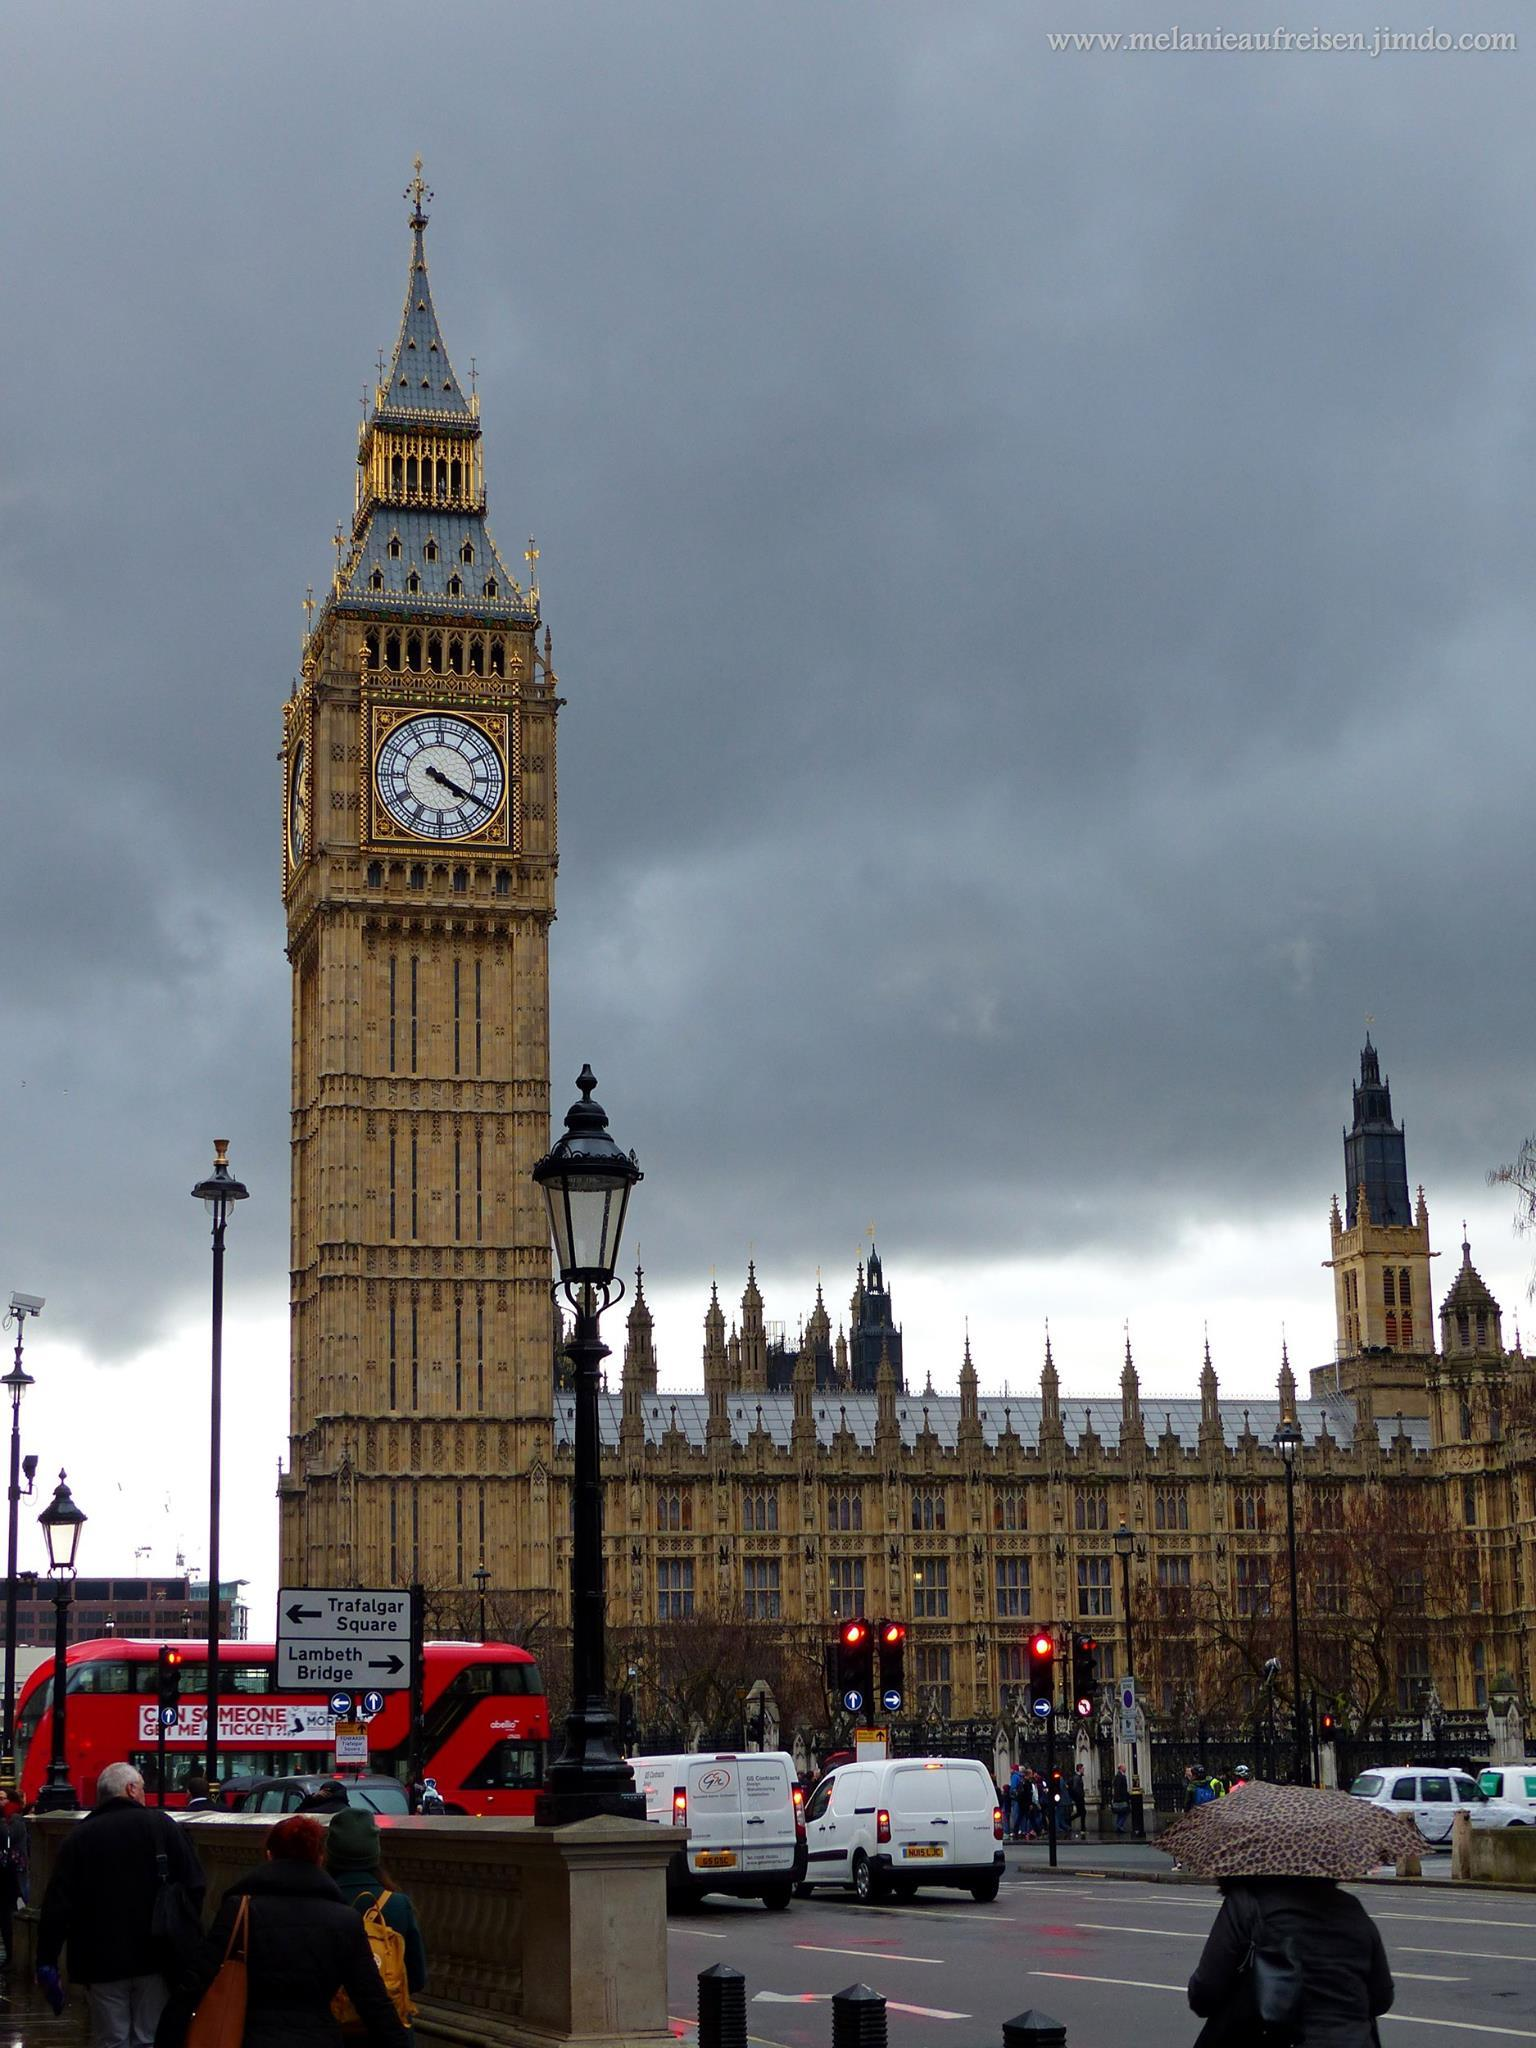 Queen-Elisabeth-Tower mit Big Ben und dem Parliament